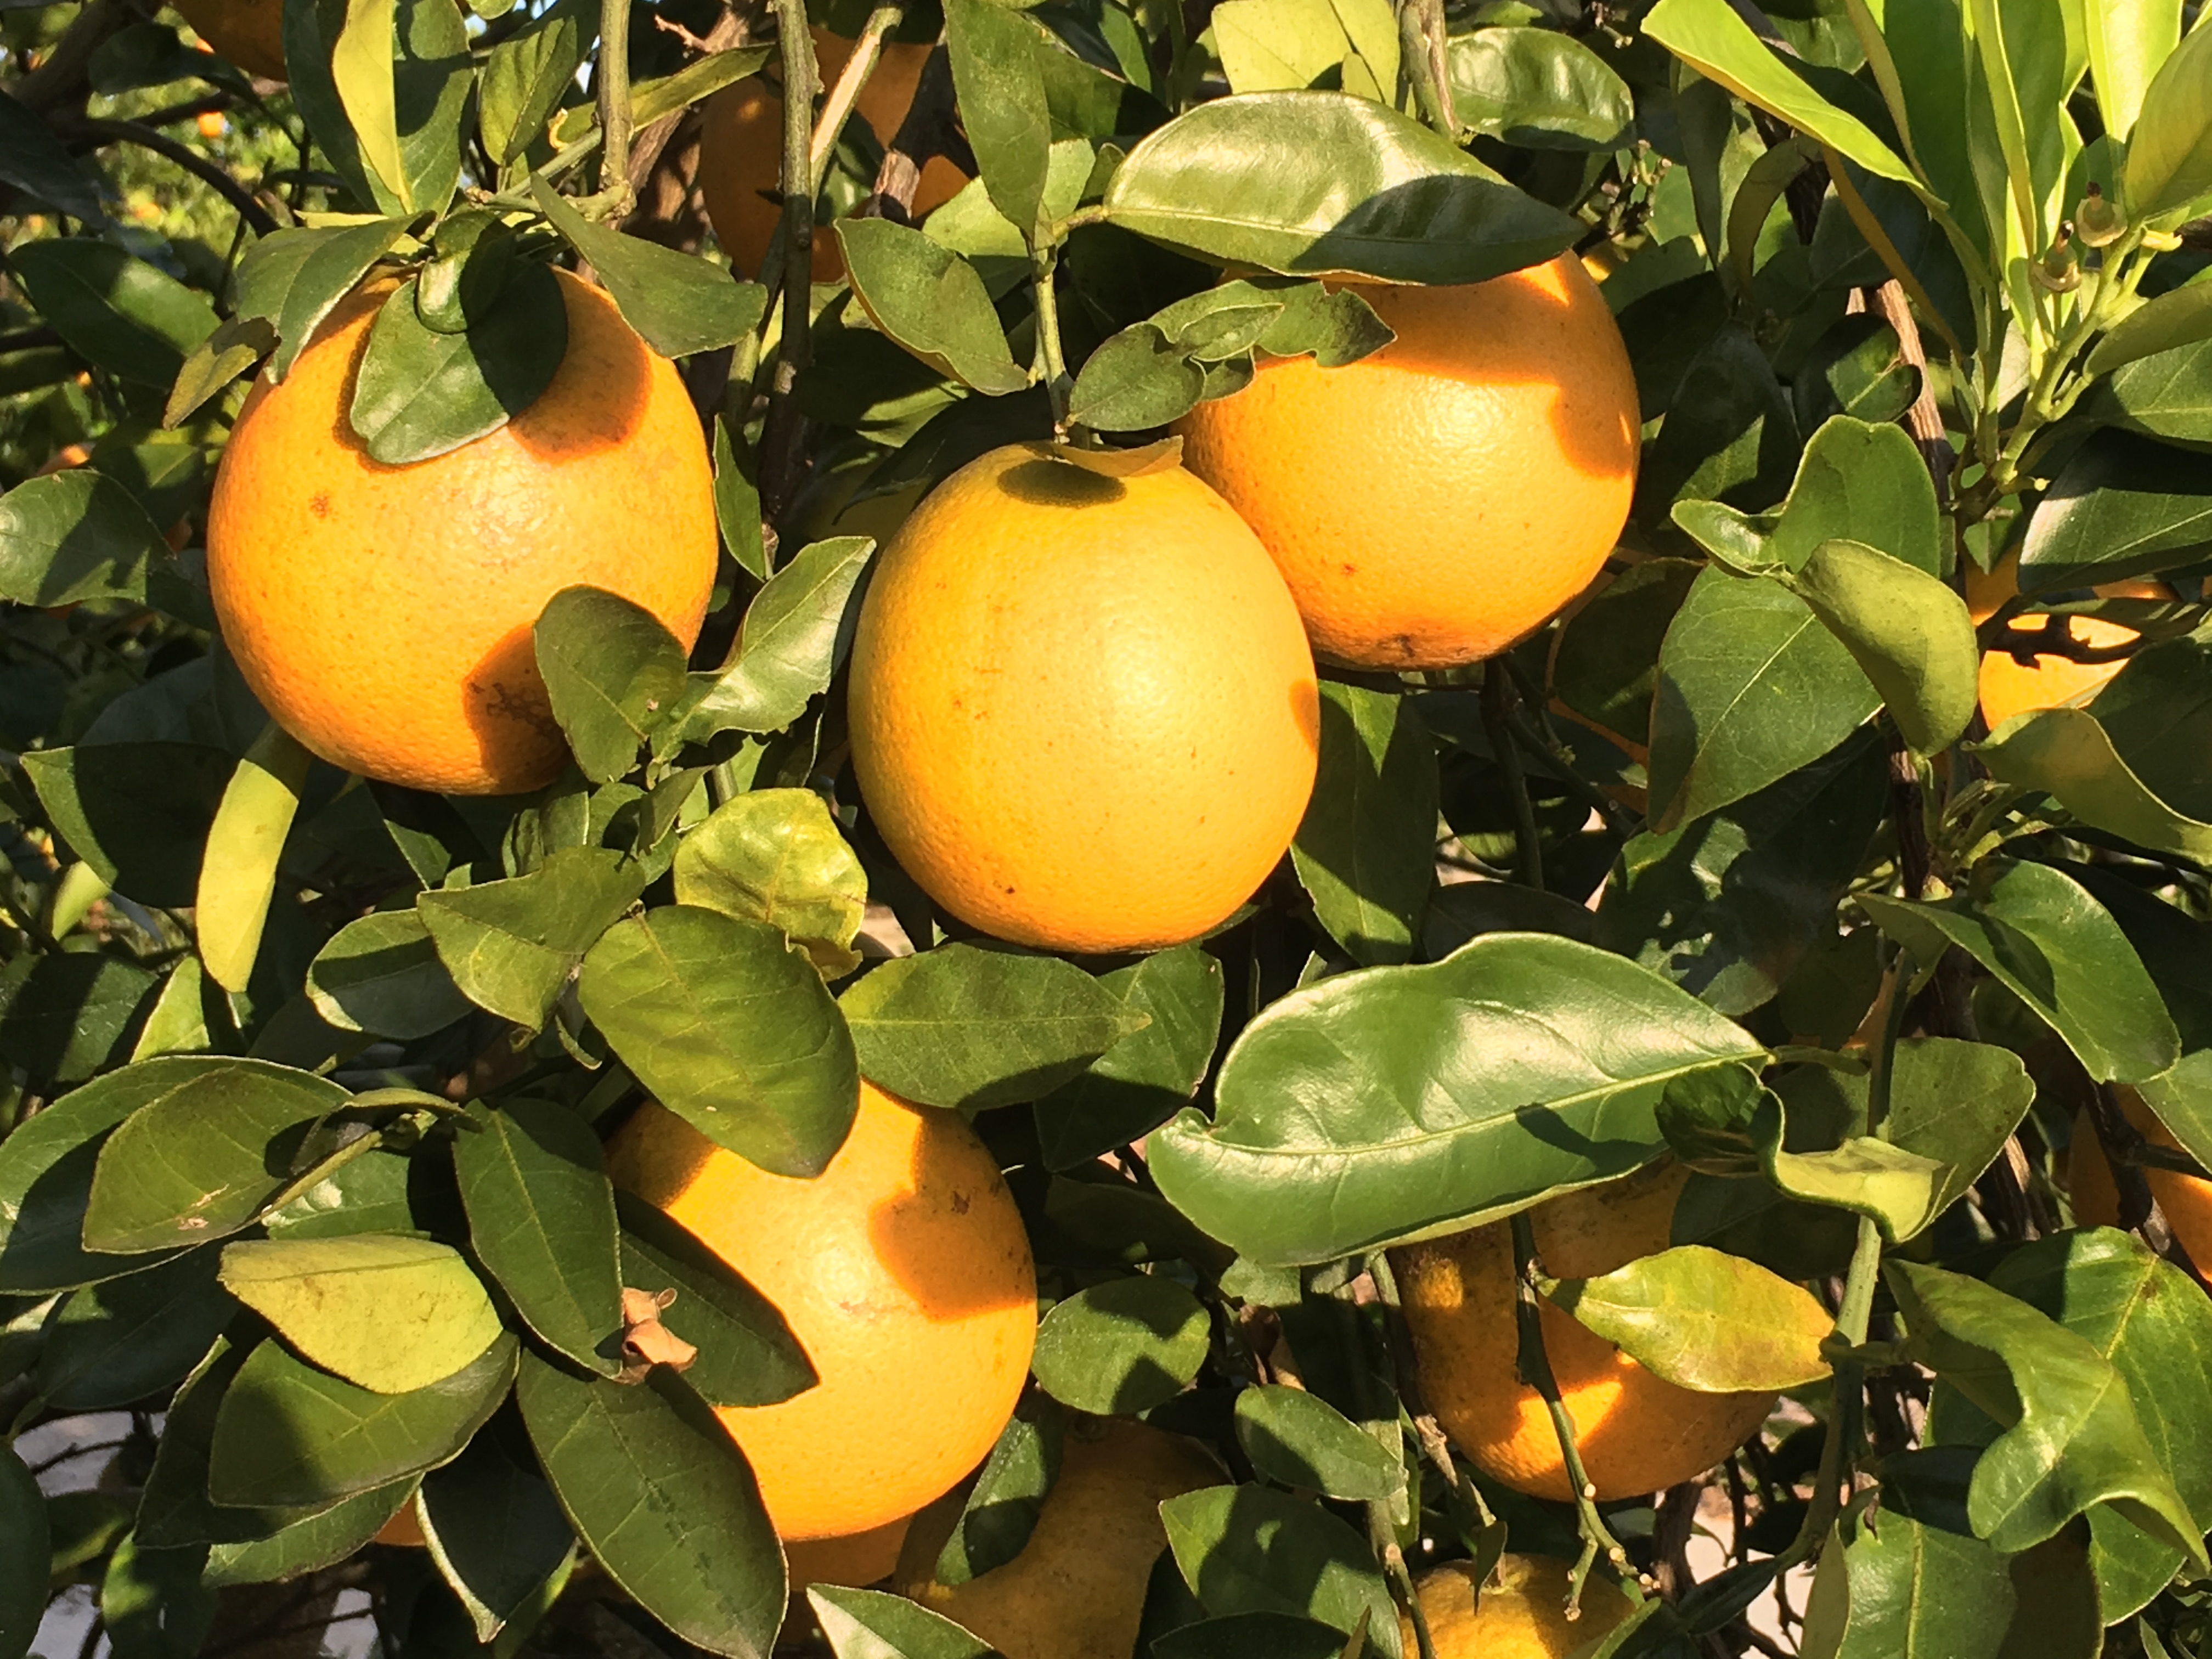 Photo of oranges growing on tree by Phil Bourke